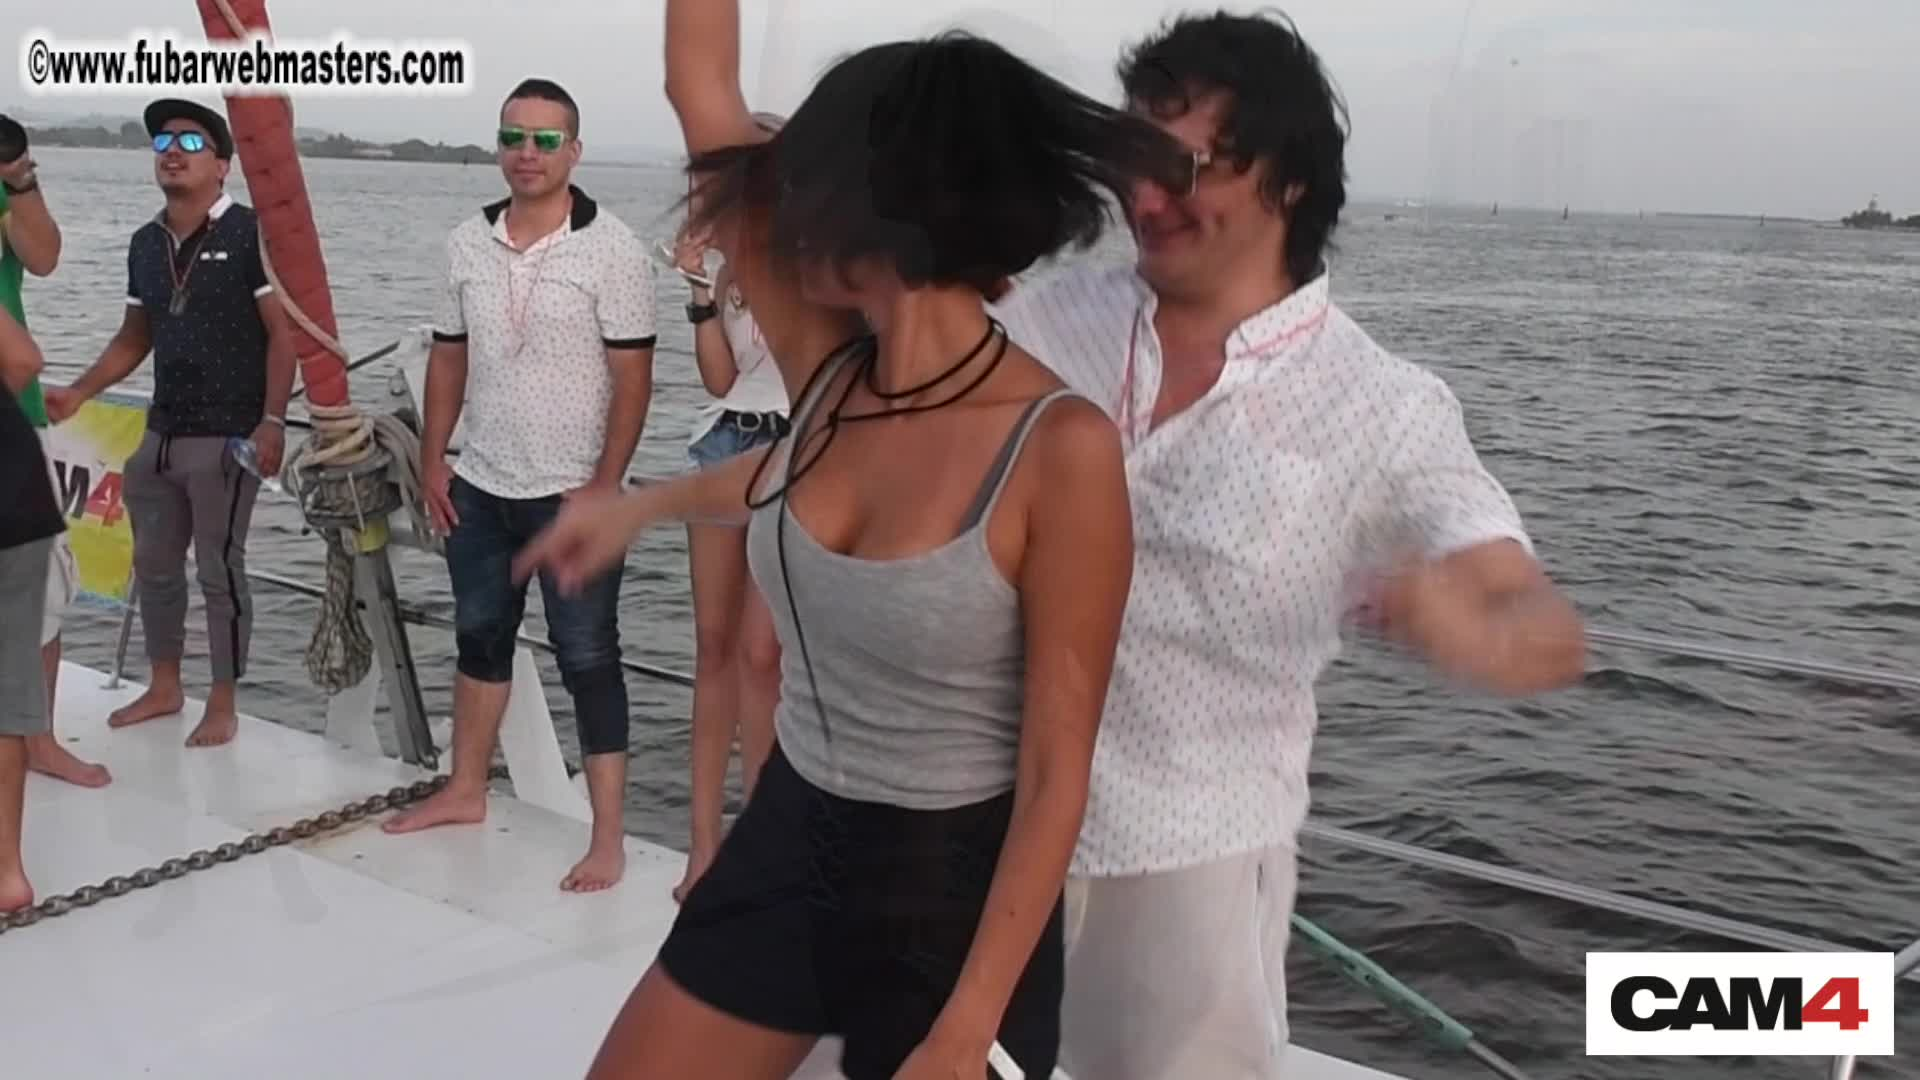 LALEXPO 2017 - SUNET CRUISE by CAM4 - thumbnail